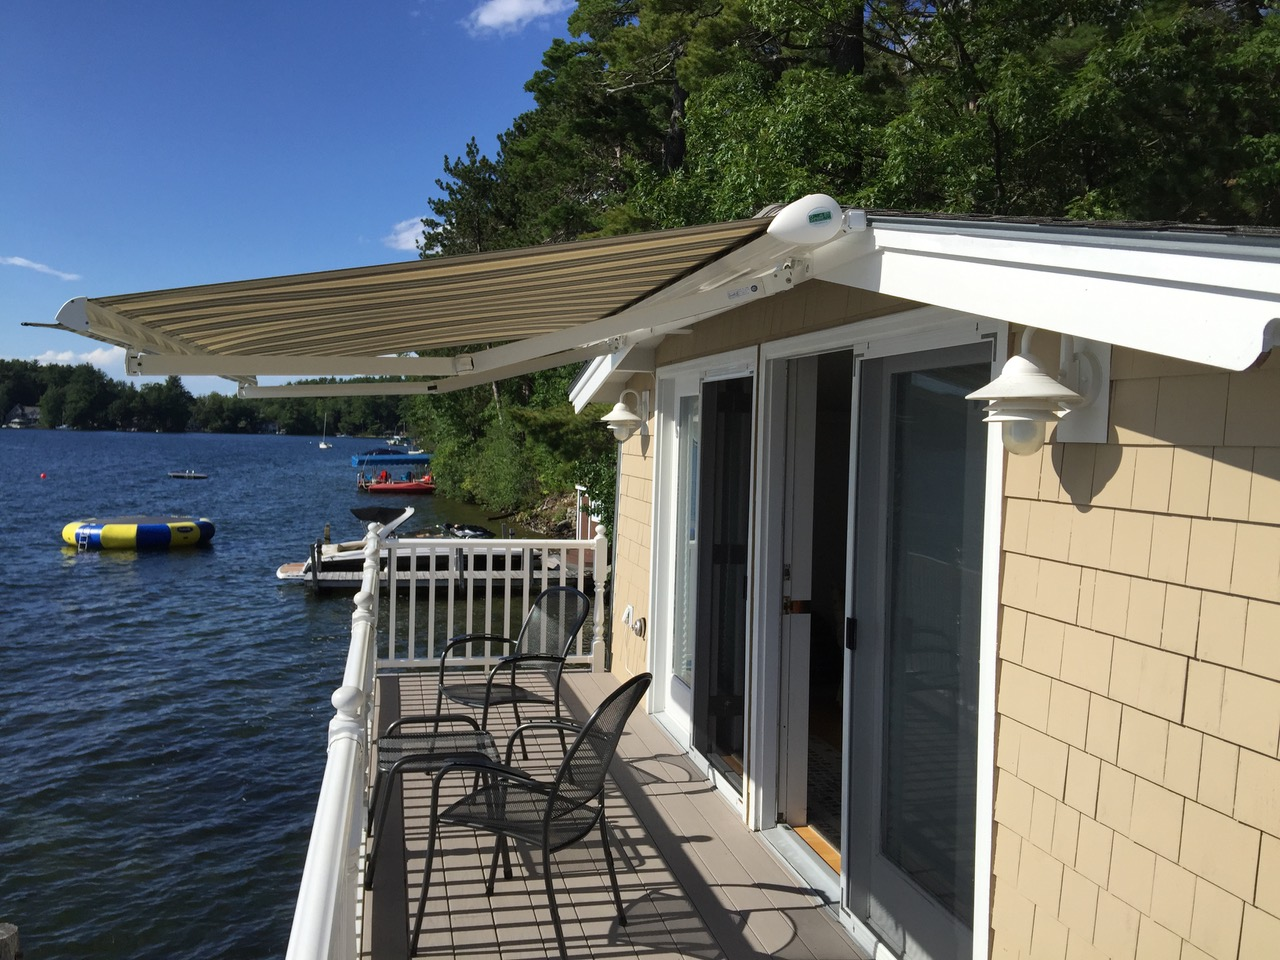 Awning Installation In Alton Nh Awningsnh